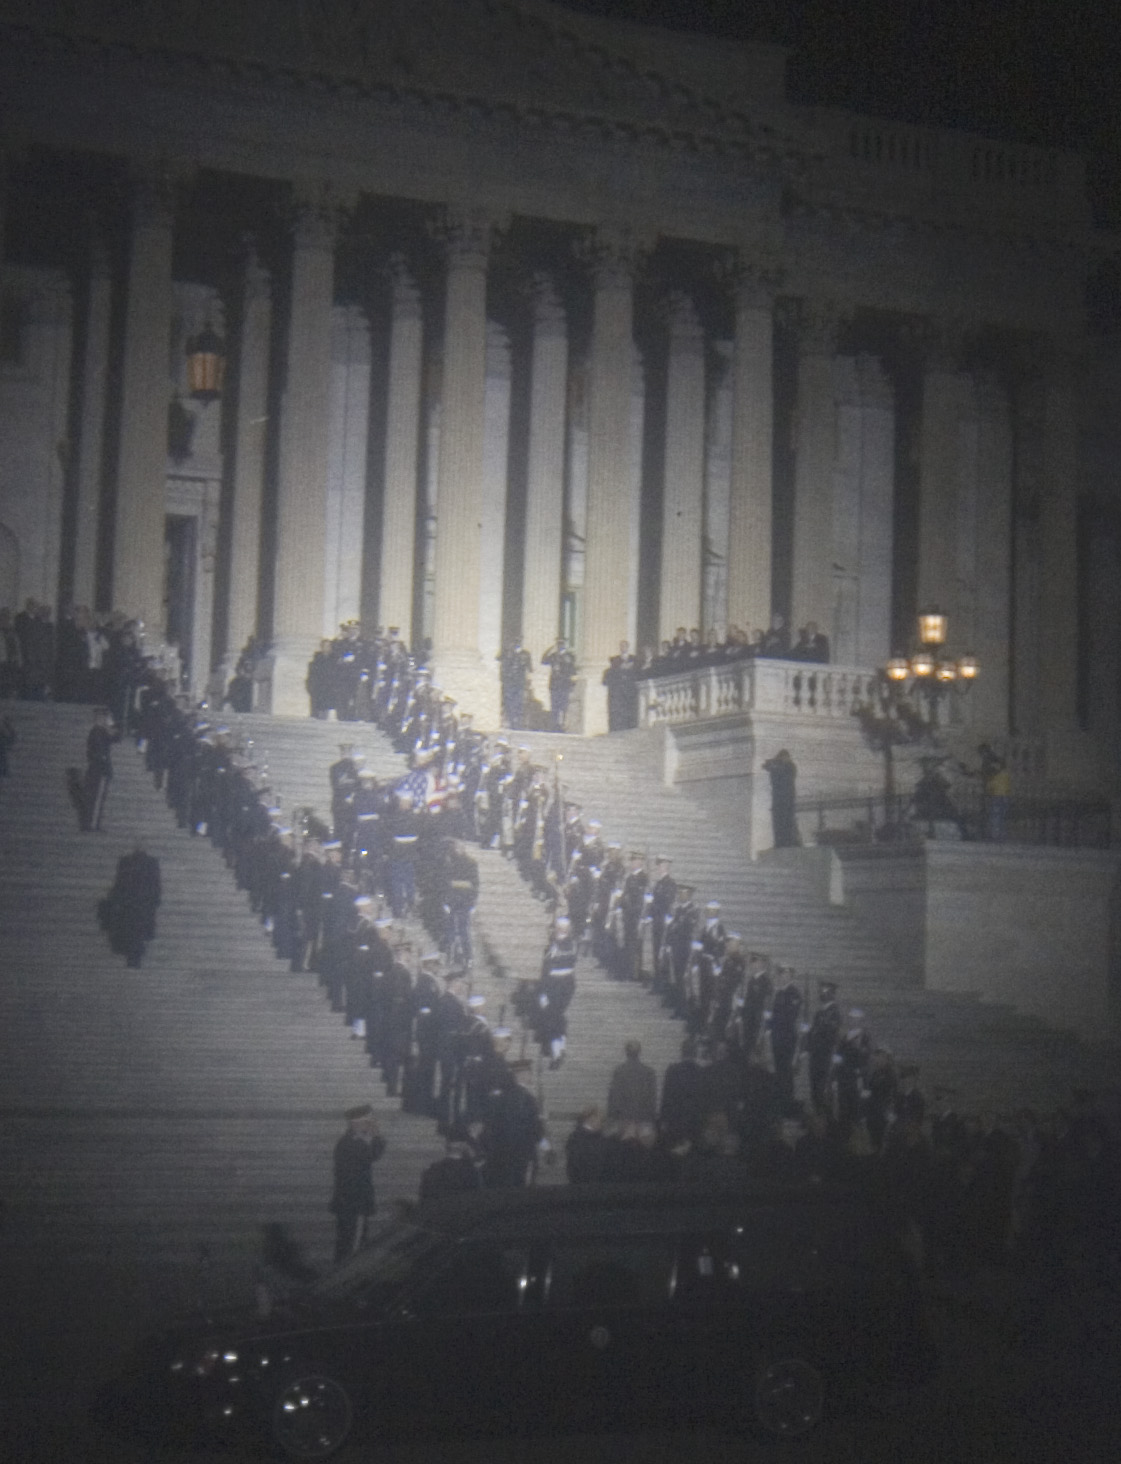 The casket of President Ford is carried up the steps of the US Capital by a military honor guard prior to his lying in state in the Rotunda. - Alex Lorman